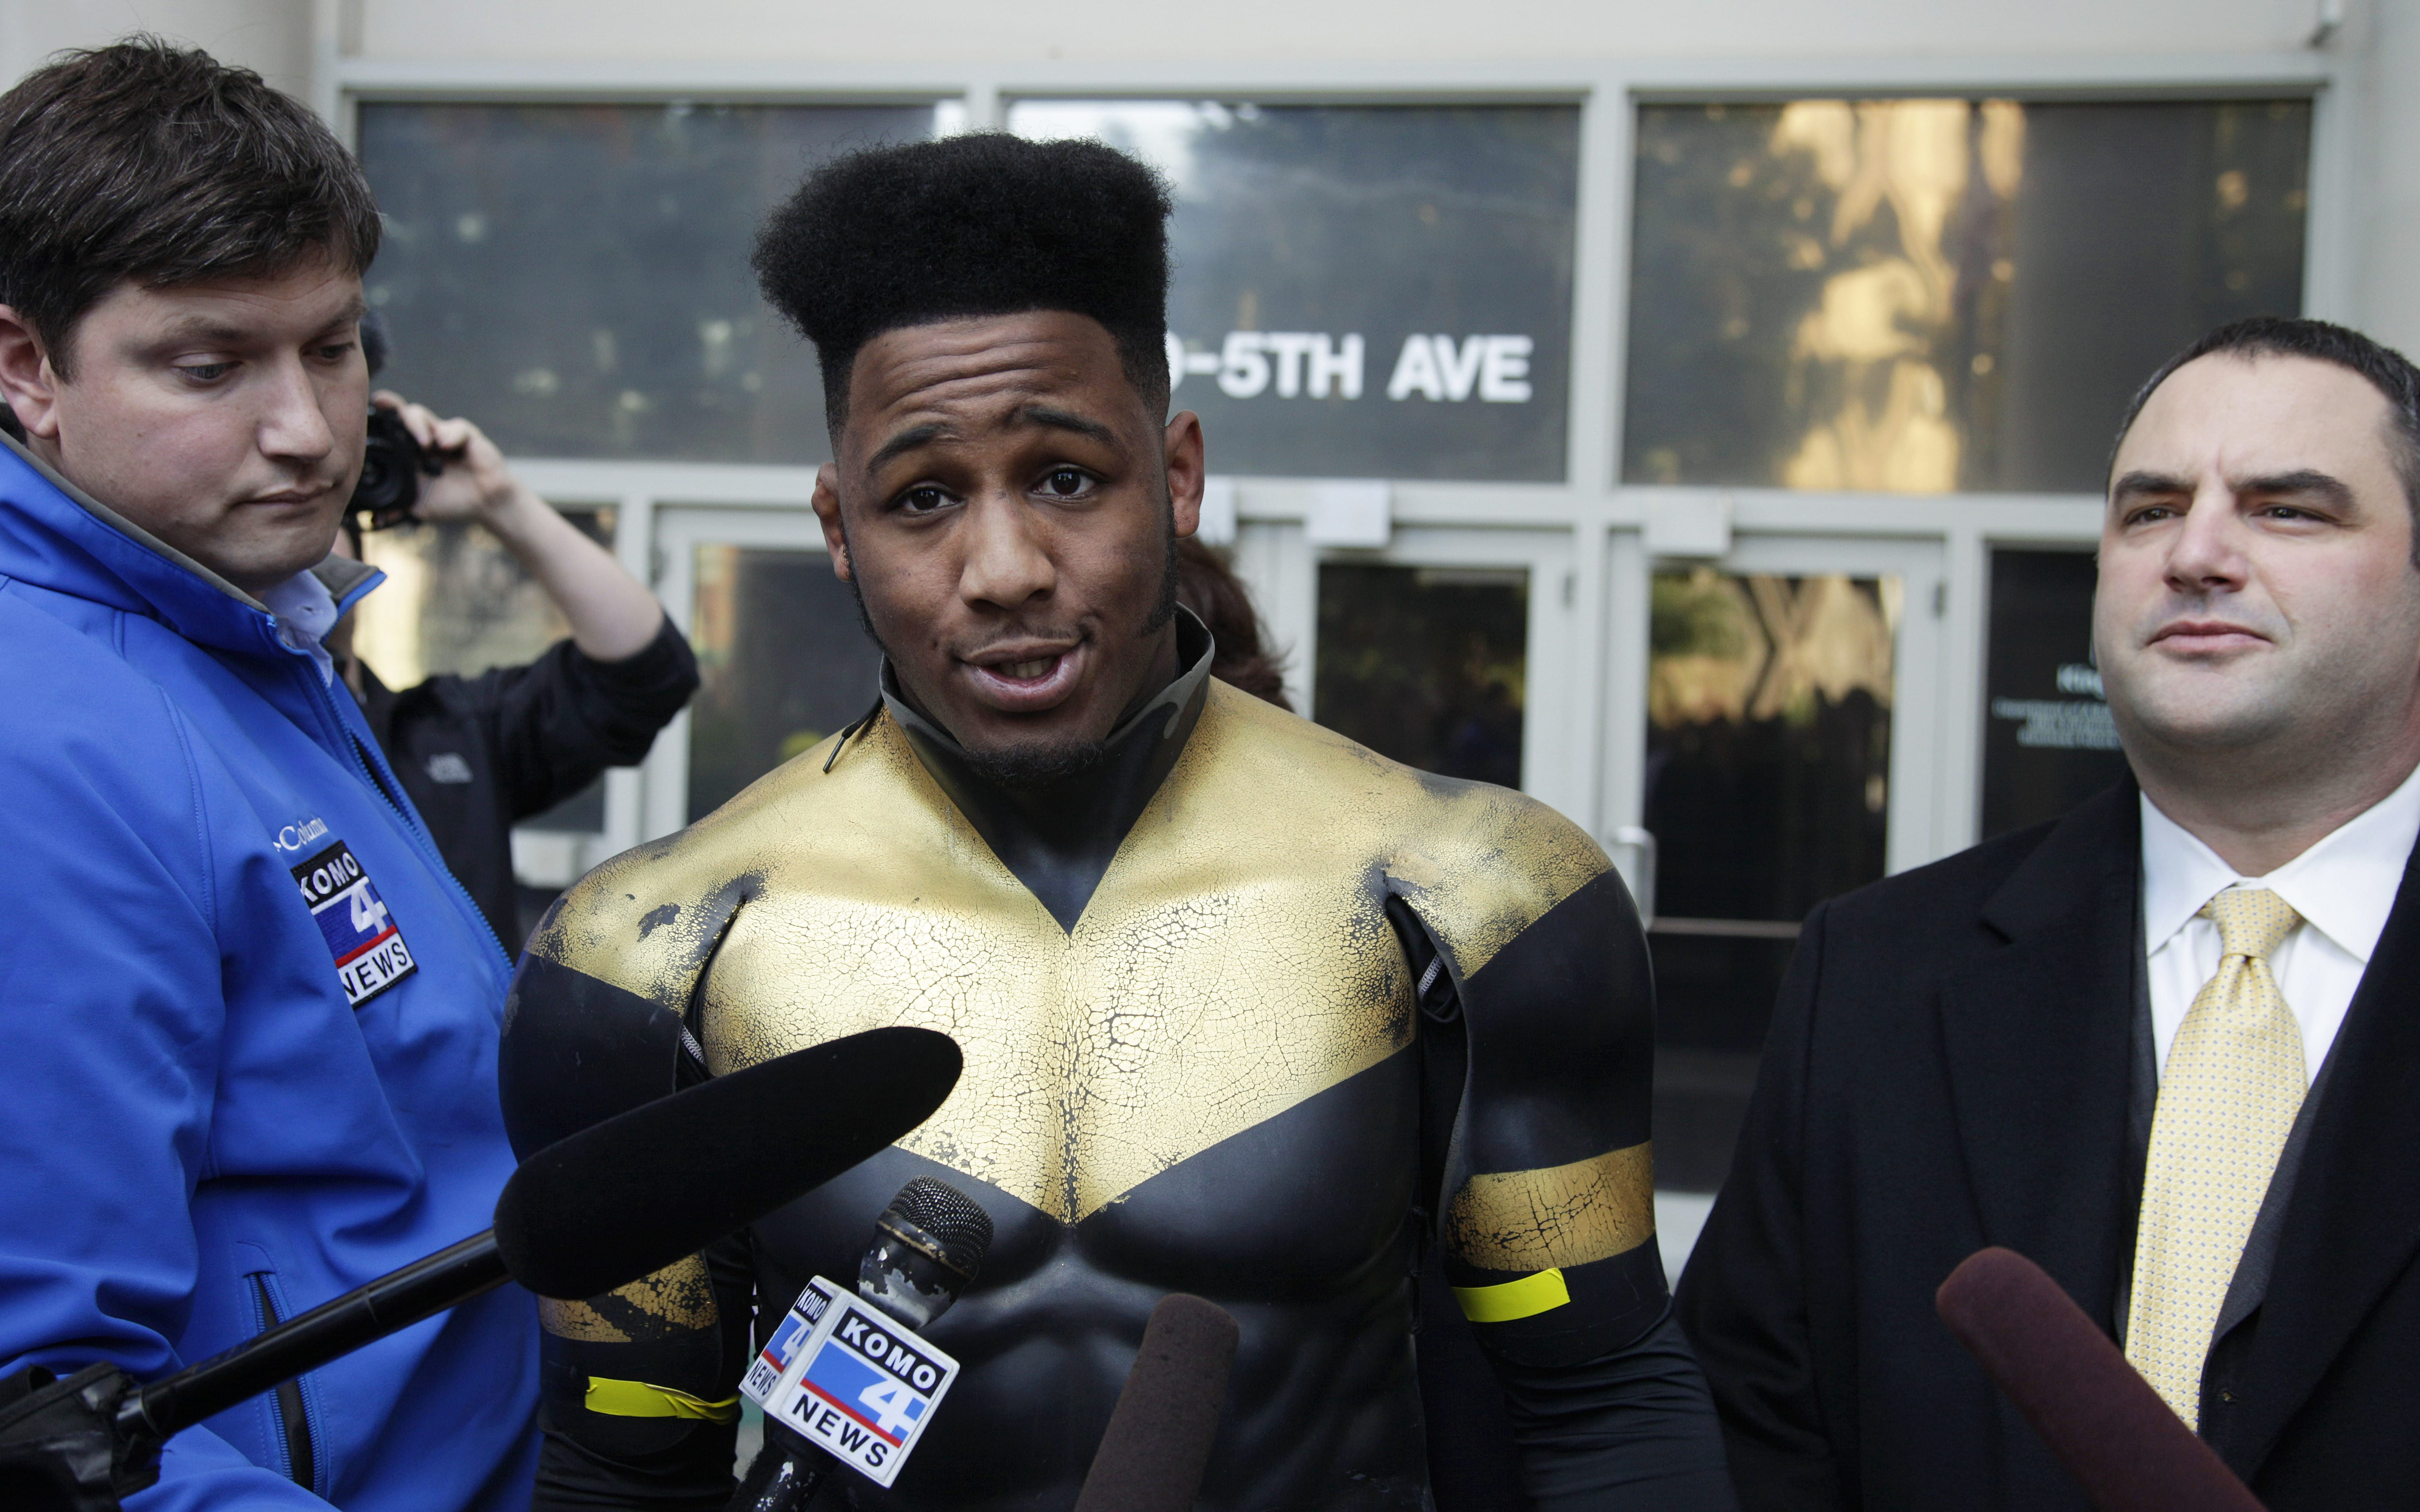 "Ben Fodor, a self-styled superhero who goes by the name ""Phoenix Jones,"" talks to reporters as he stands next to one of his attorneys, Matt Hartman, right, after Fodor appeared in court, Thursday, Oct. 13, 2011, in Seattle. Prosecutors have not yet filed charges  against Fodor after he was arrested Sunday after police say he pepper sprayed a group of people downtown as they left a nightclub. (AP Photo/Ted S. Warren)"